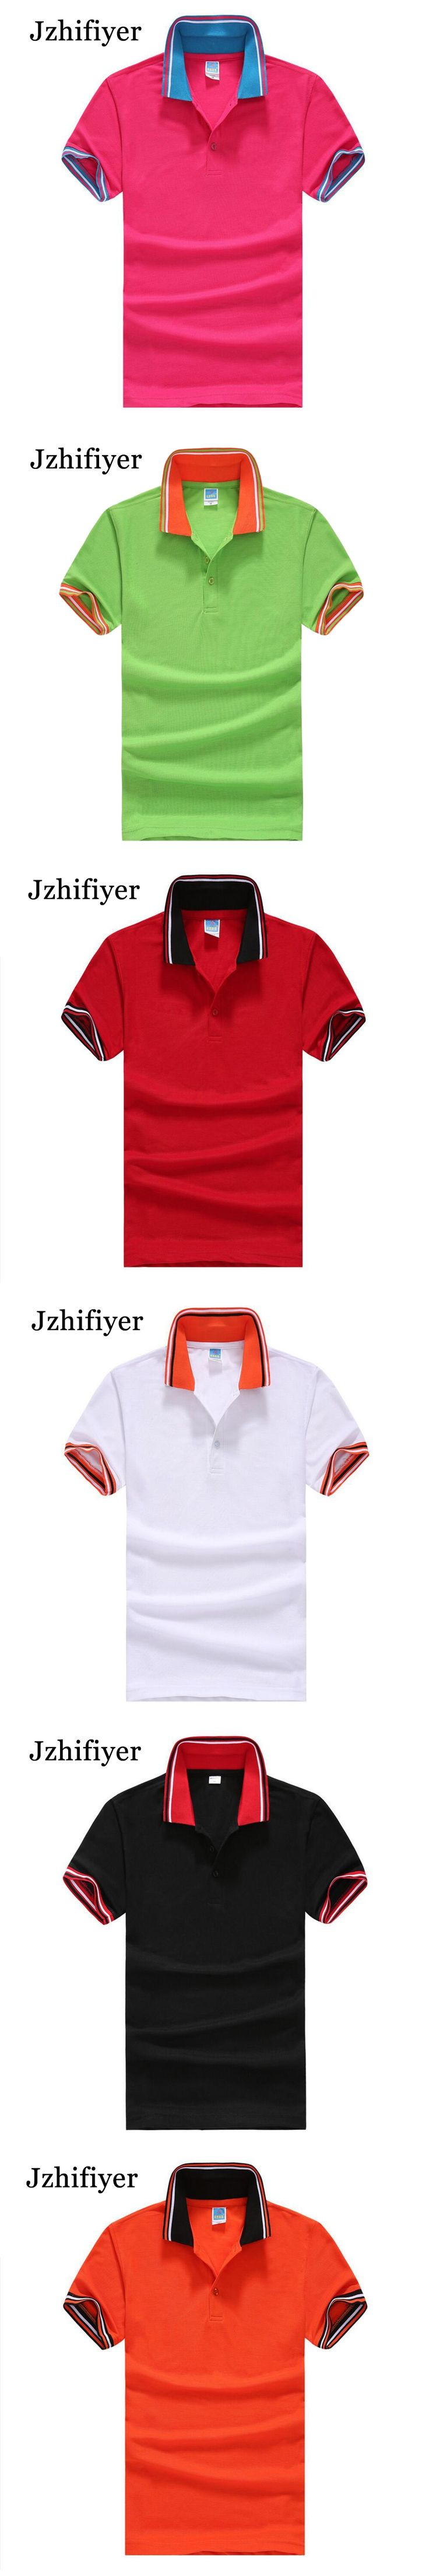 Jzhifiyer blusas camiseta masculina de marca TC 180GSM Eyelet men's Short-sleeve loose polo shirts Turn-down collar polo men